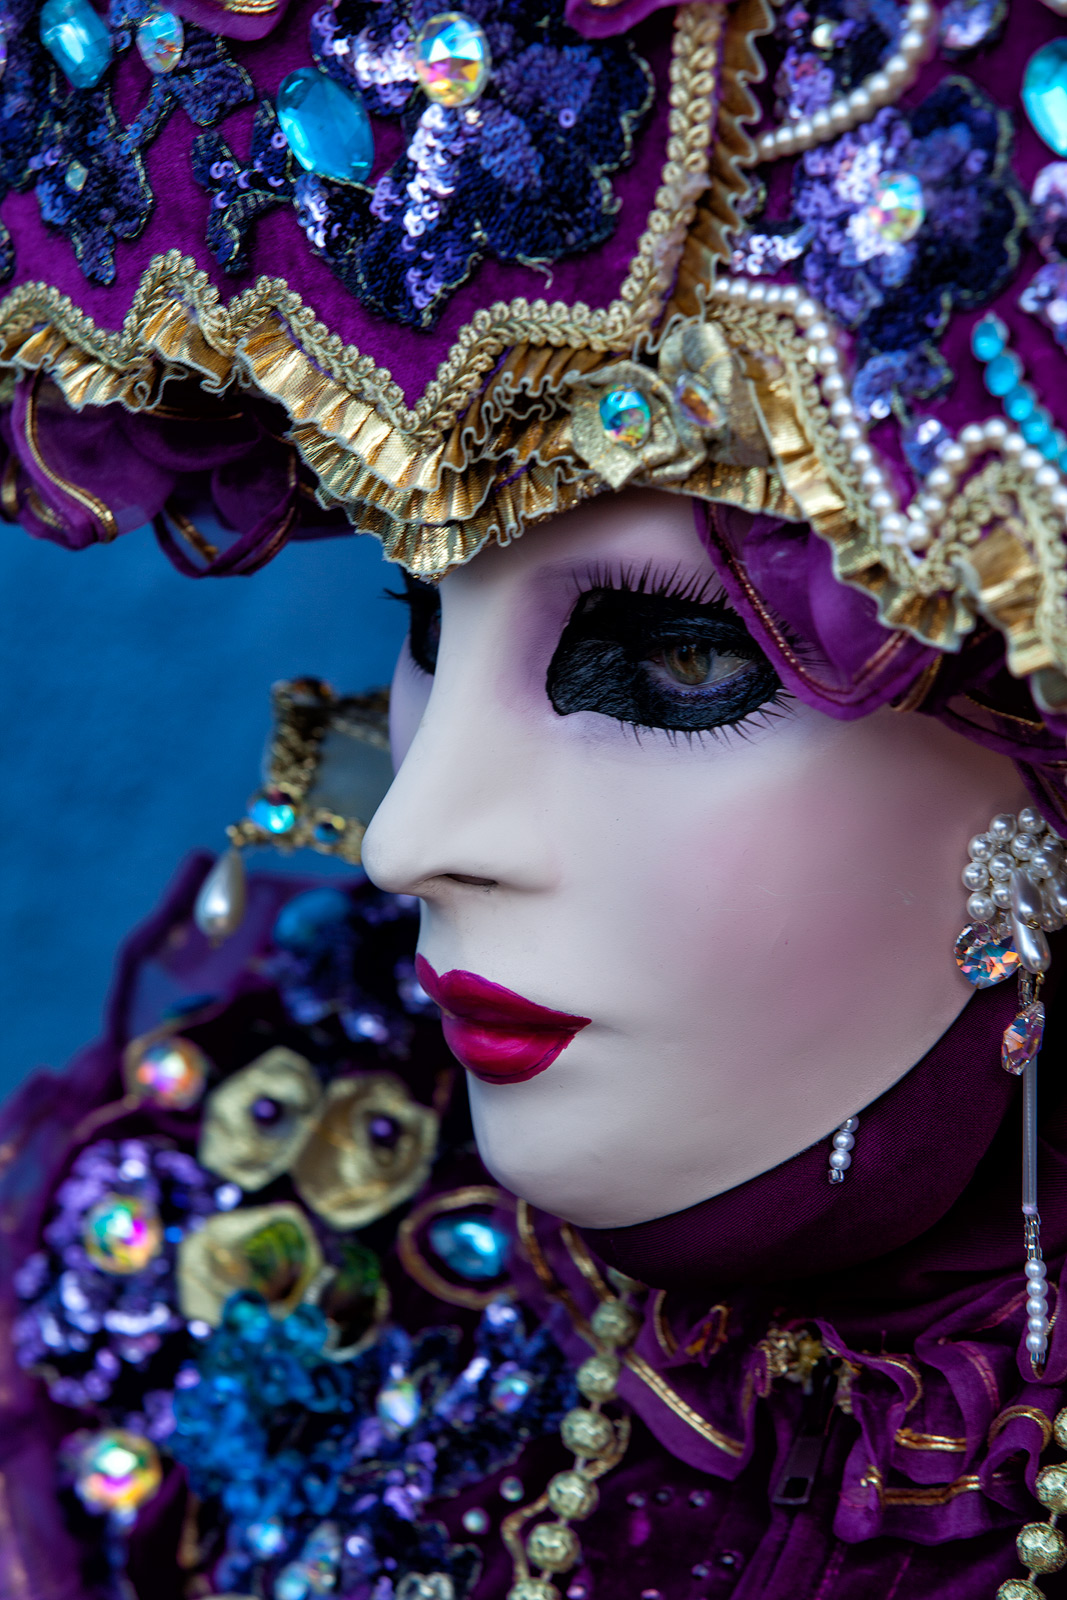 burano, burano island, carnival, celebration, close-up, colorful, costume, europe, italy, macro, mask, party, portrait, profile, purple, venice, vertical, photo